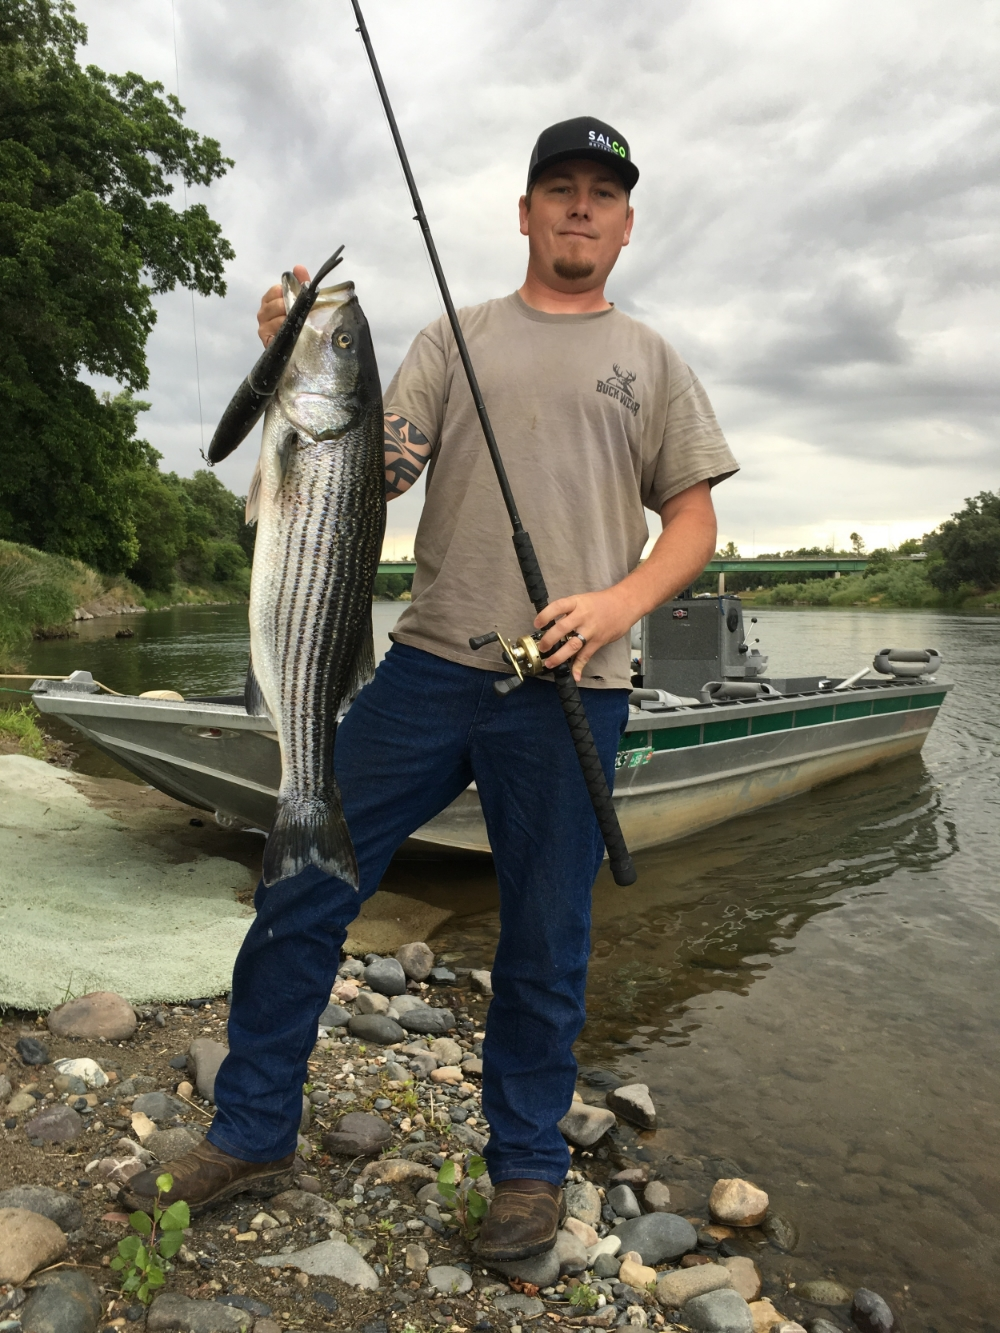 Michael Armstrong from Nice, Ca caught this 14 pound striped bass on May 23, 2016. He was casting a custom made 15 inch glide bait, in a rainbow trout pattern.